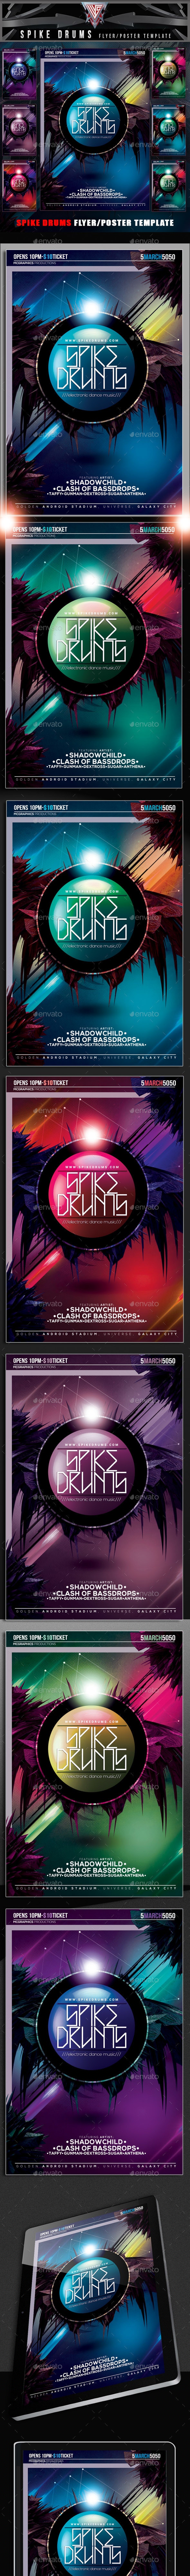 Spike Drums Flyer Template - Clubs & Parties Events